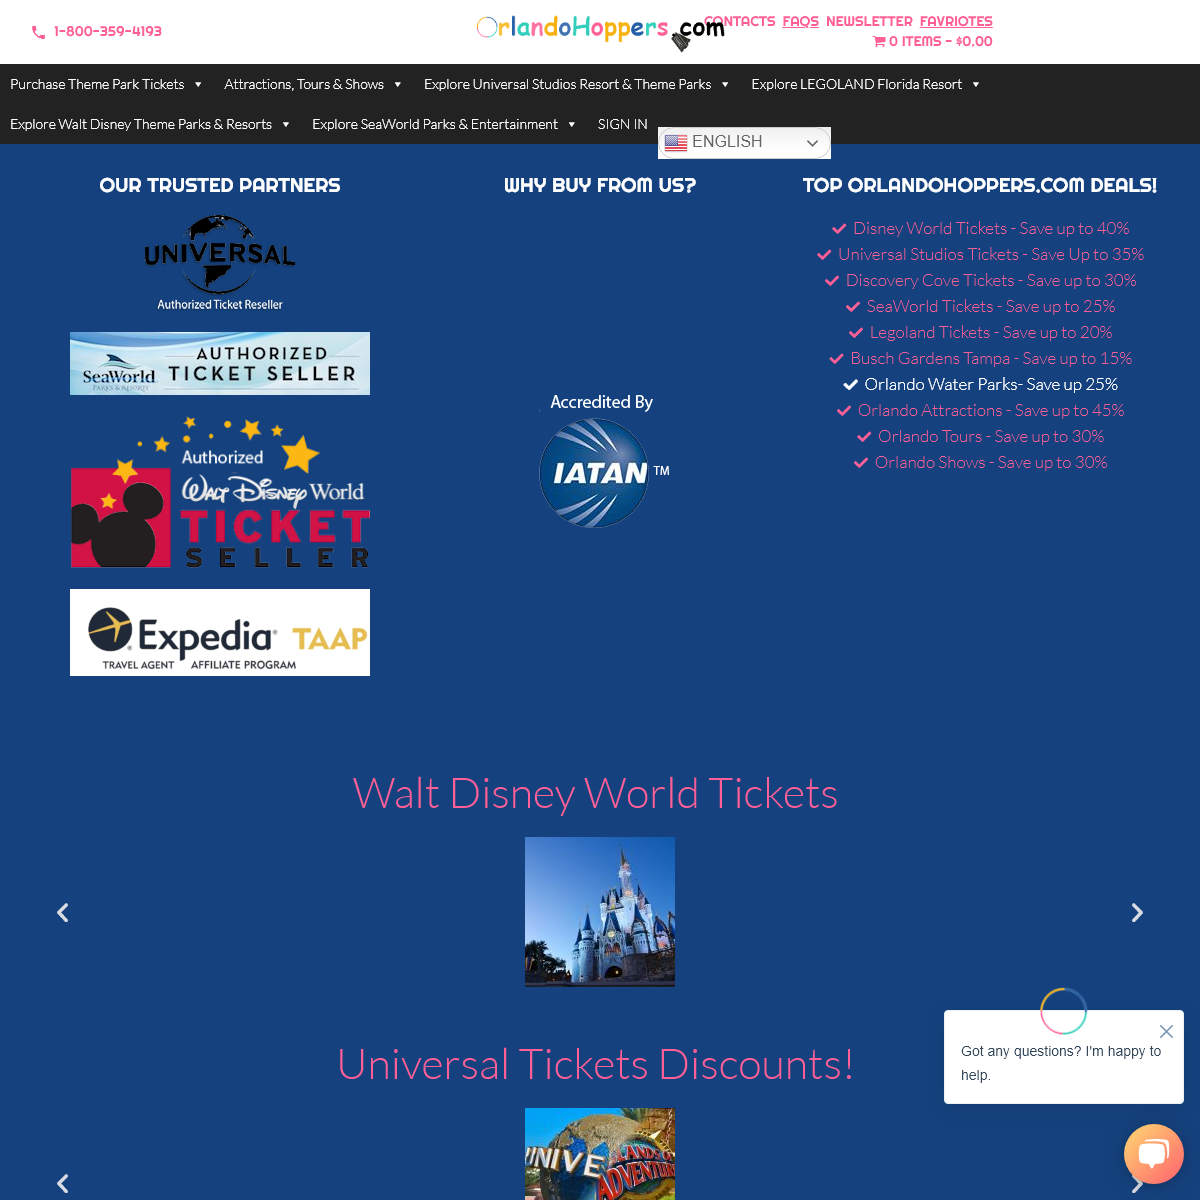 Orlando Hoppers - #1 Authorized Theme Parks Tickets, Attractions, Shows & Tours Ticket Reseller In Florida - OrlandoHoppers.com